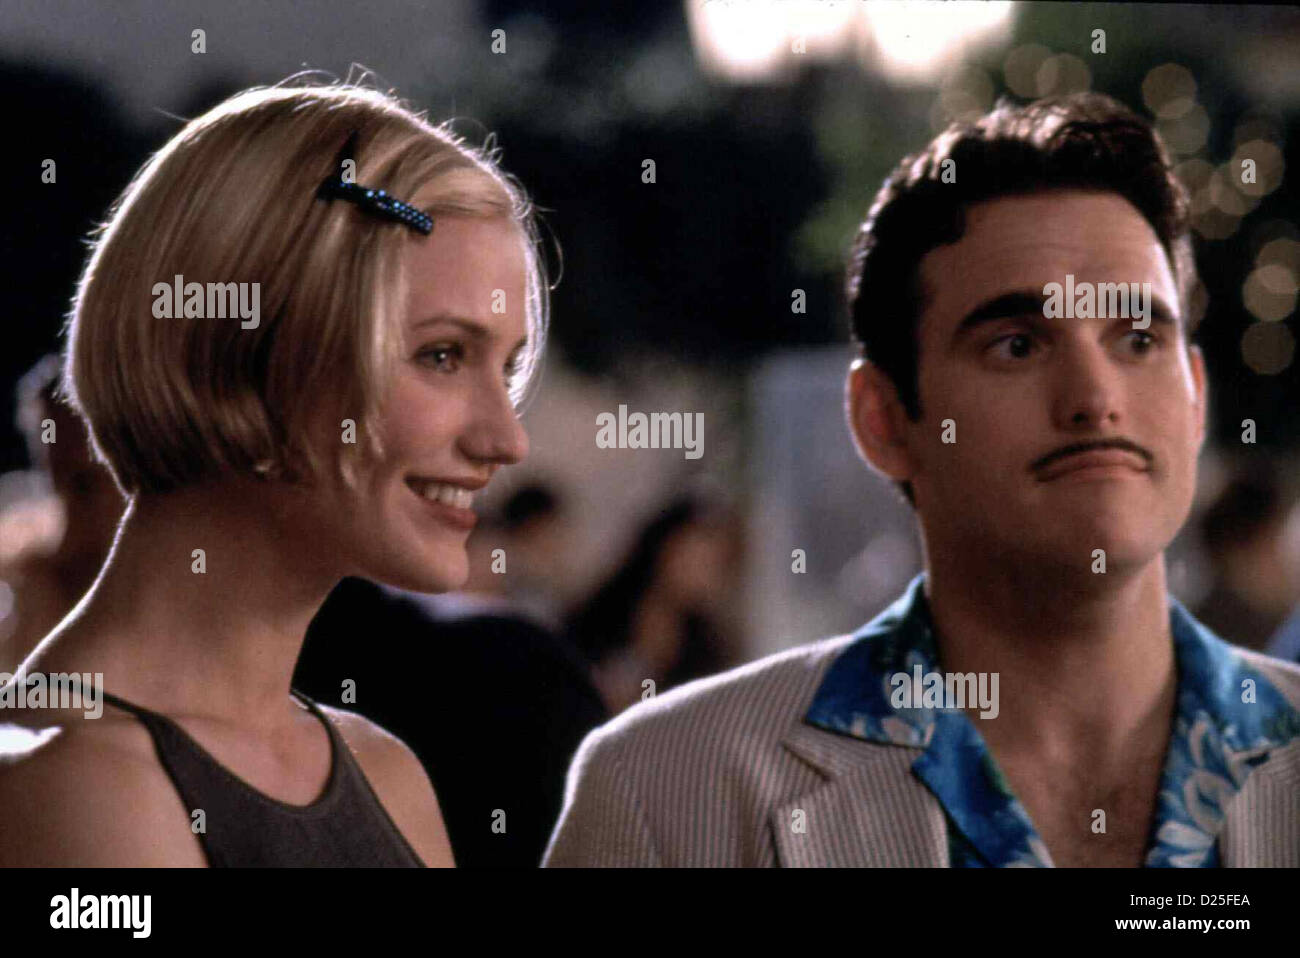 Verrueckt Nach Mary  There's Something About Mary  Cameron Diaz, Matt Dillon Pechvogel Ted Stroehmann beauftragt - Stock Image